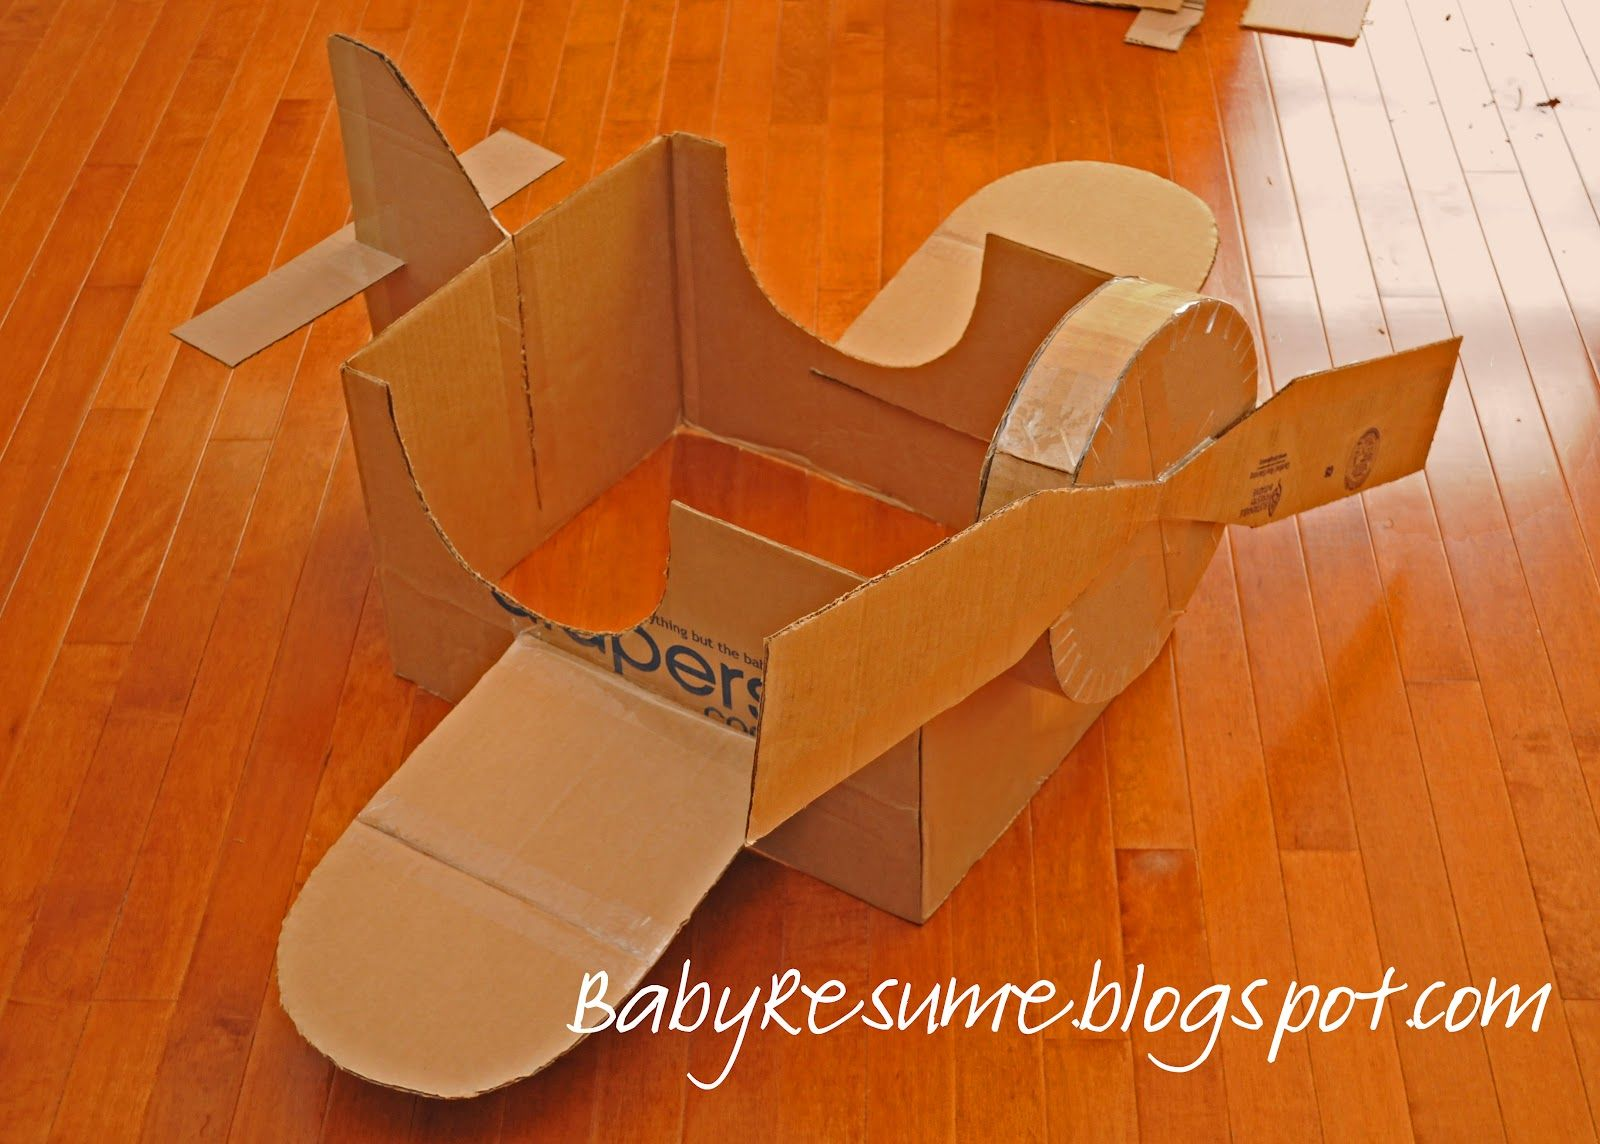 How to make a big cardboard airplane heres my version of the how to make a big cardboard airplane heres my version of the cardboard box airplane solutioingenieria Images